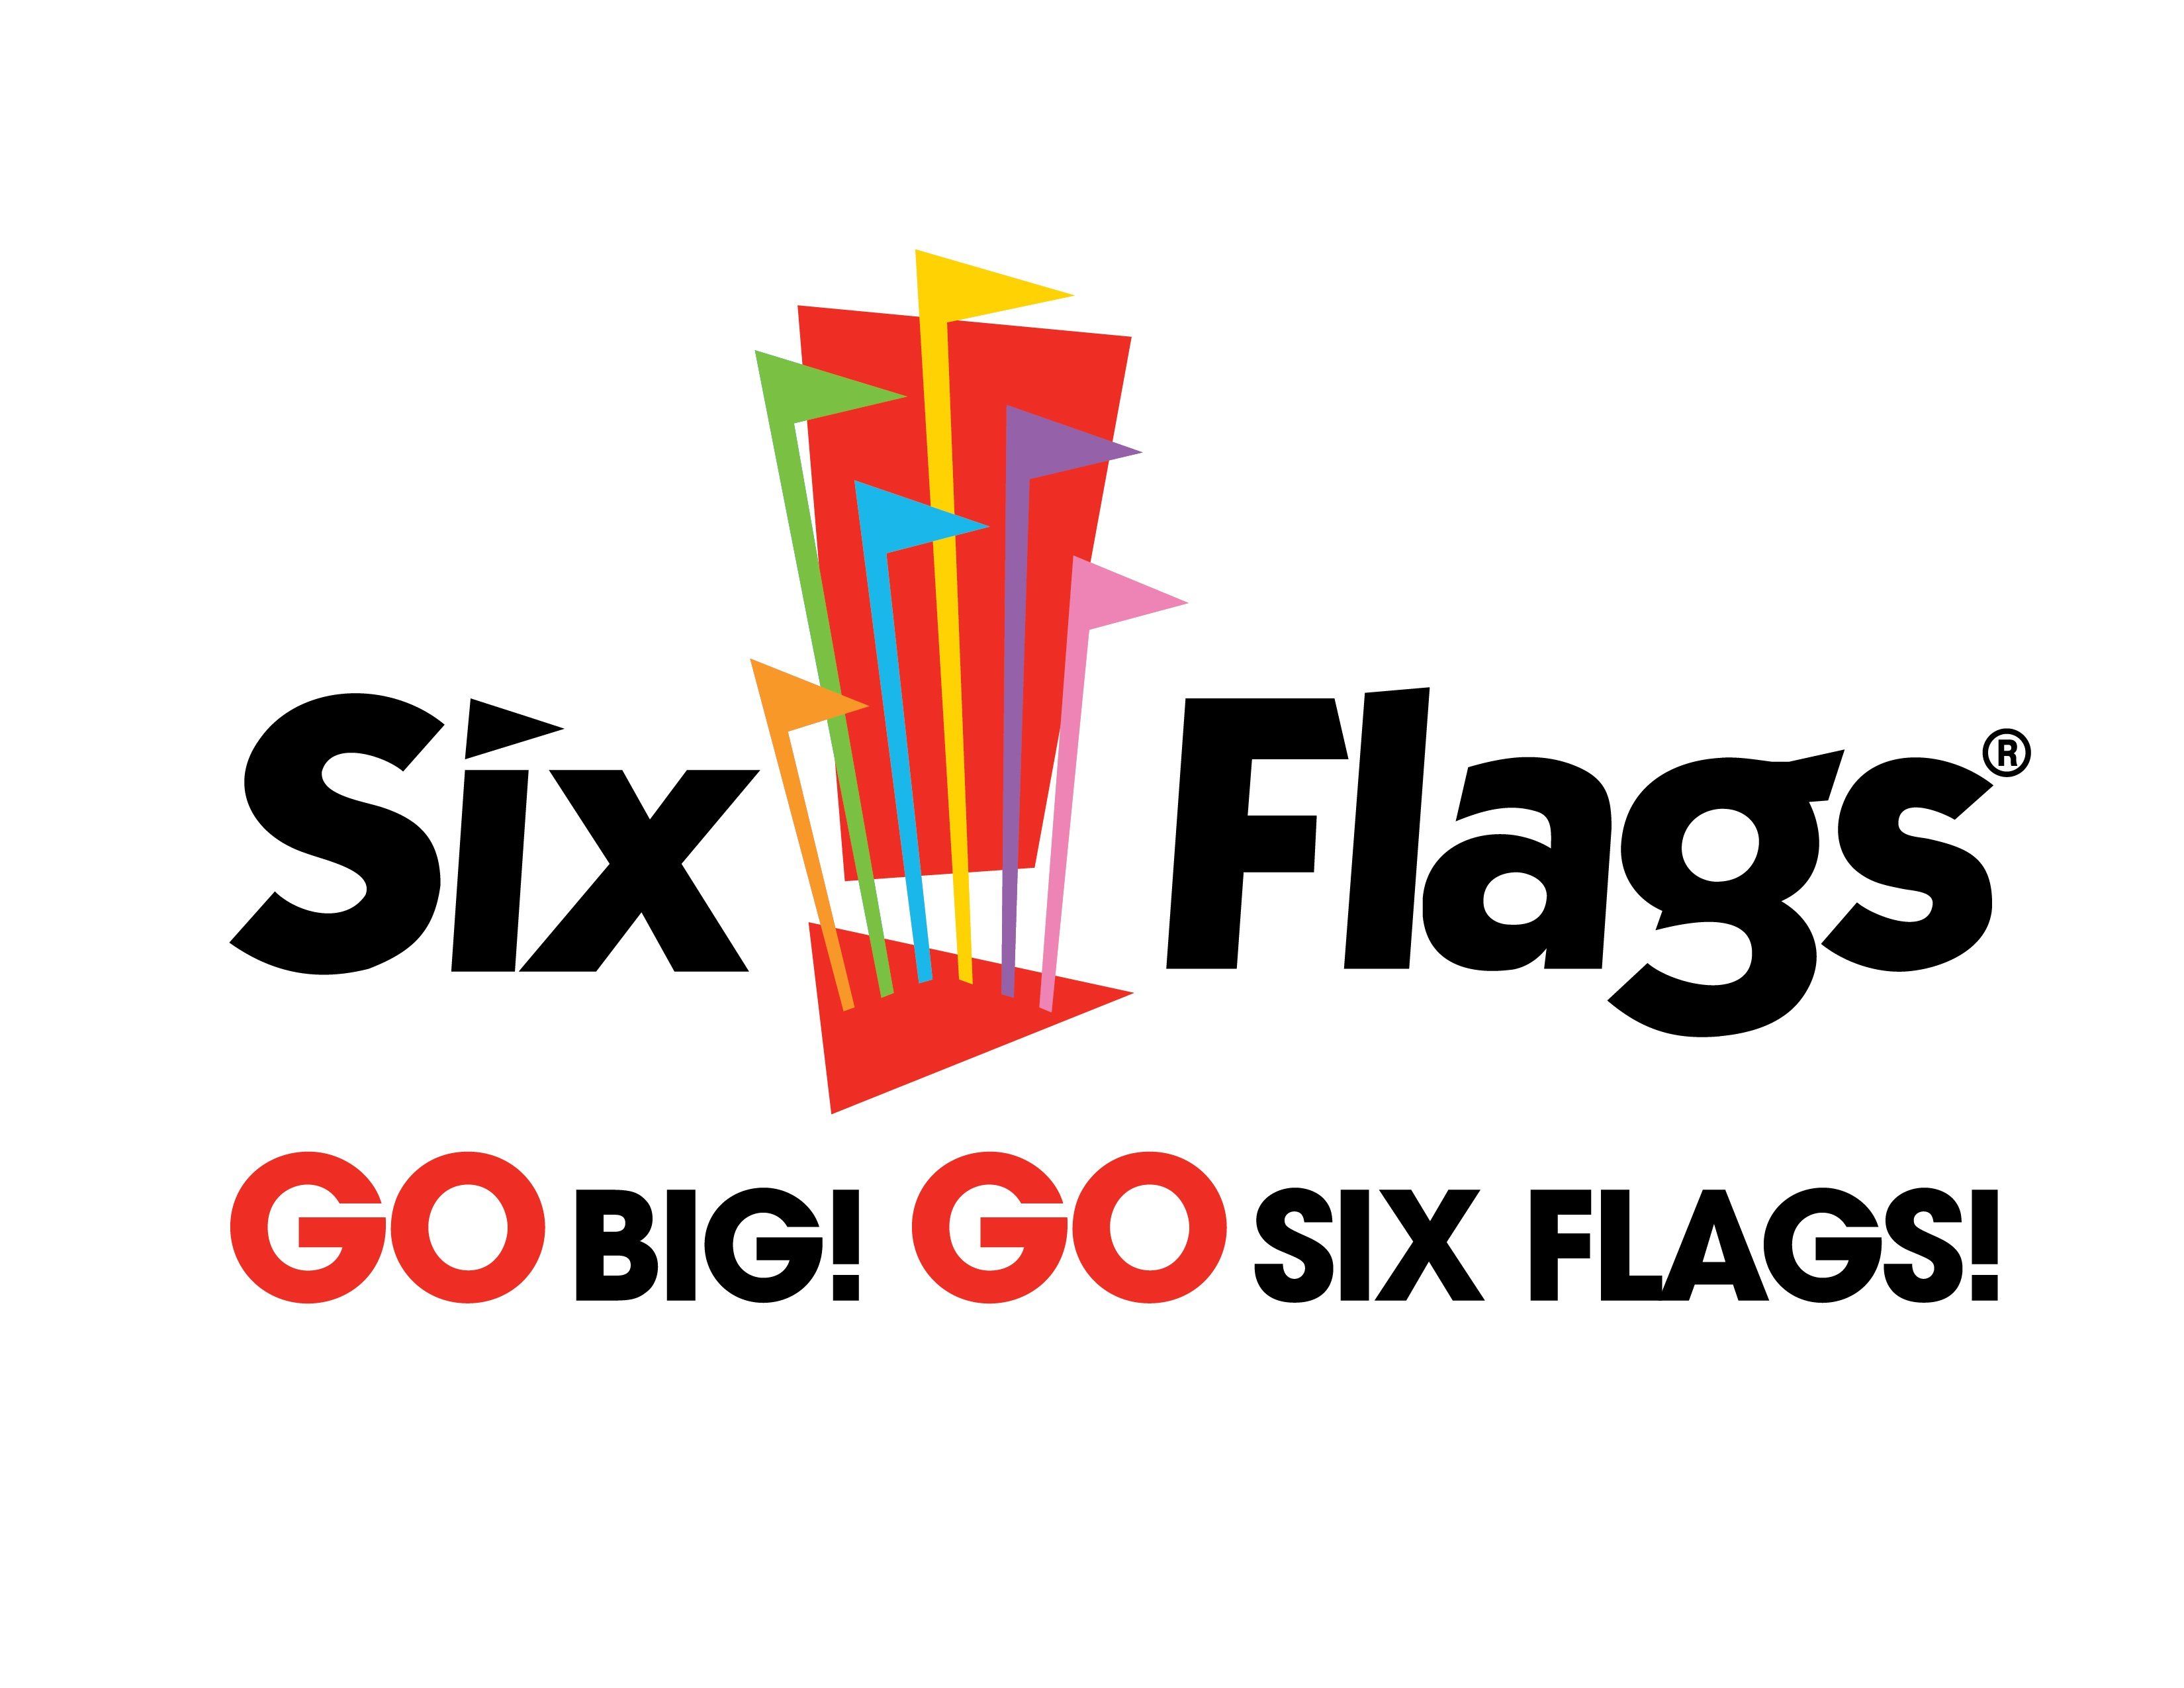 Exciting Opportunities Ahead! If you want valuable career experience, Six Flags is a fantastic place for on-the-job training. People from all around the world come to our locations, giving you the opportunity to interact with guests from various countries and cultures, which is great preparation for future positions.